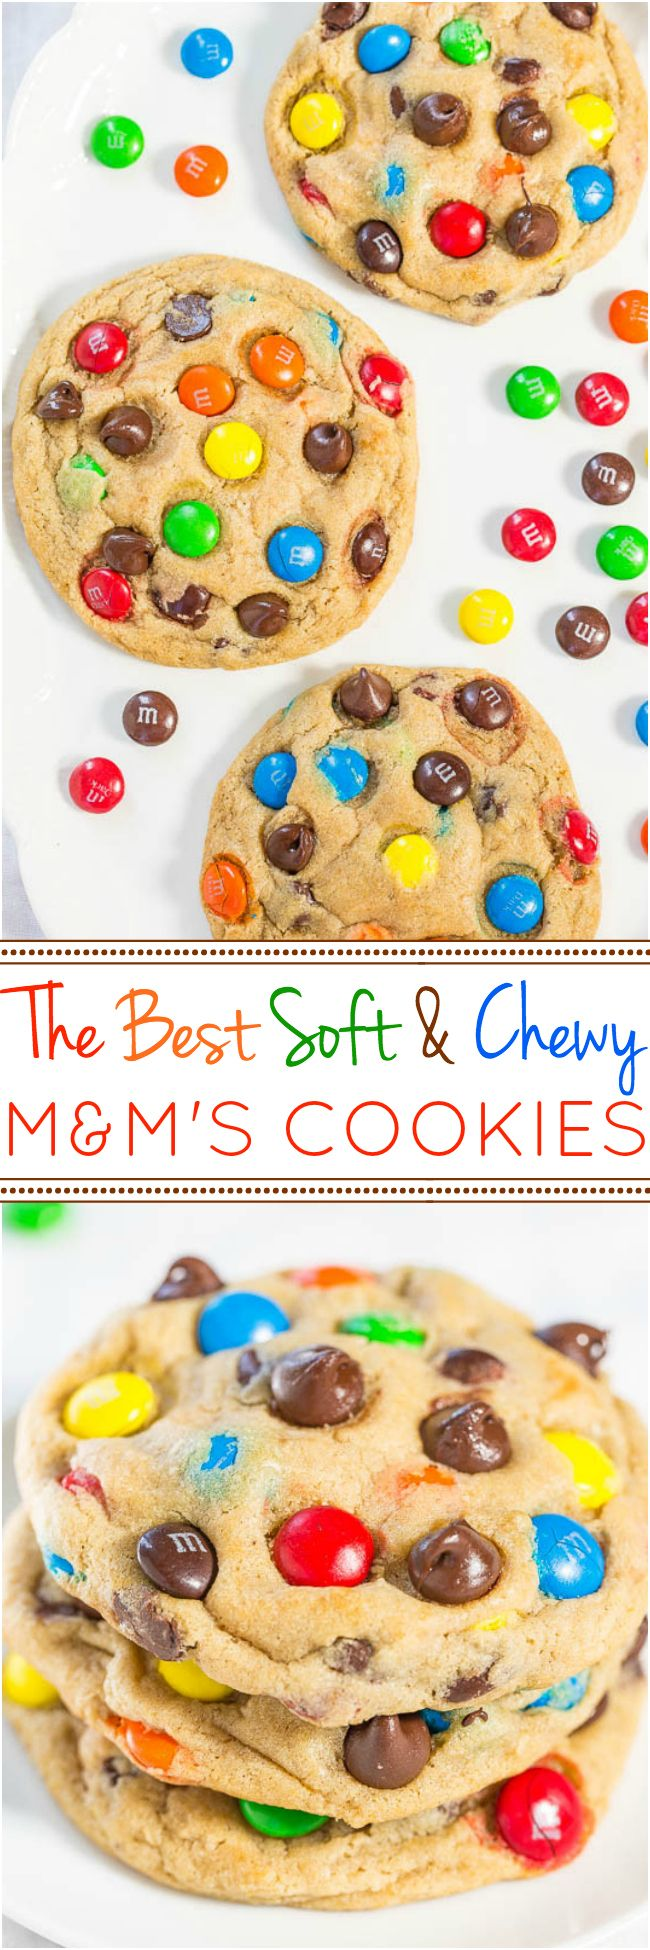 Check out this delicious recipe for Soft and Chewy M&M'S Chocolate Chip Cookies from @averie at AverieCooks.com.